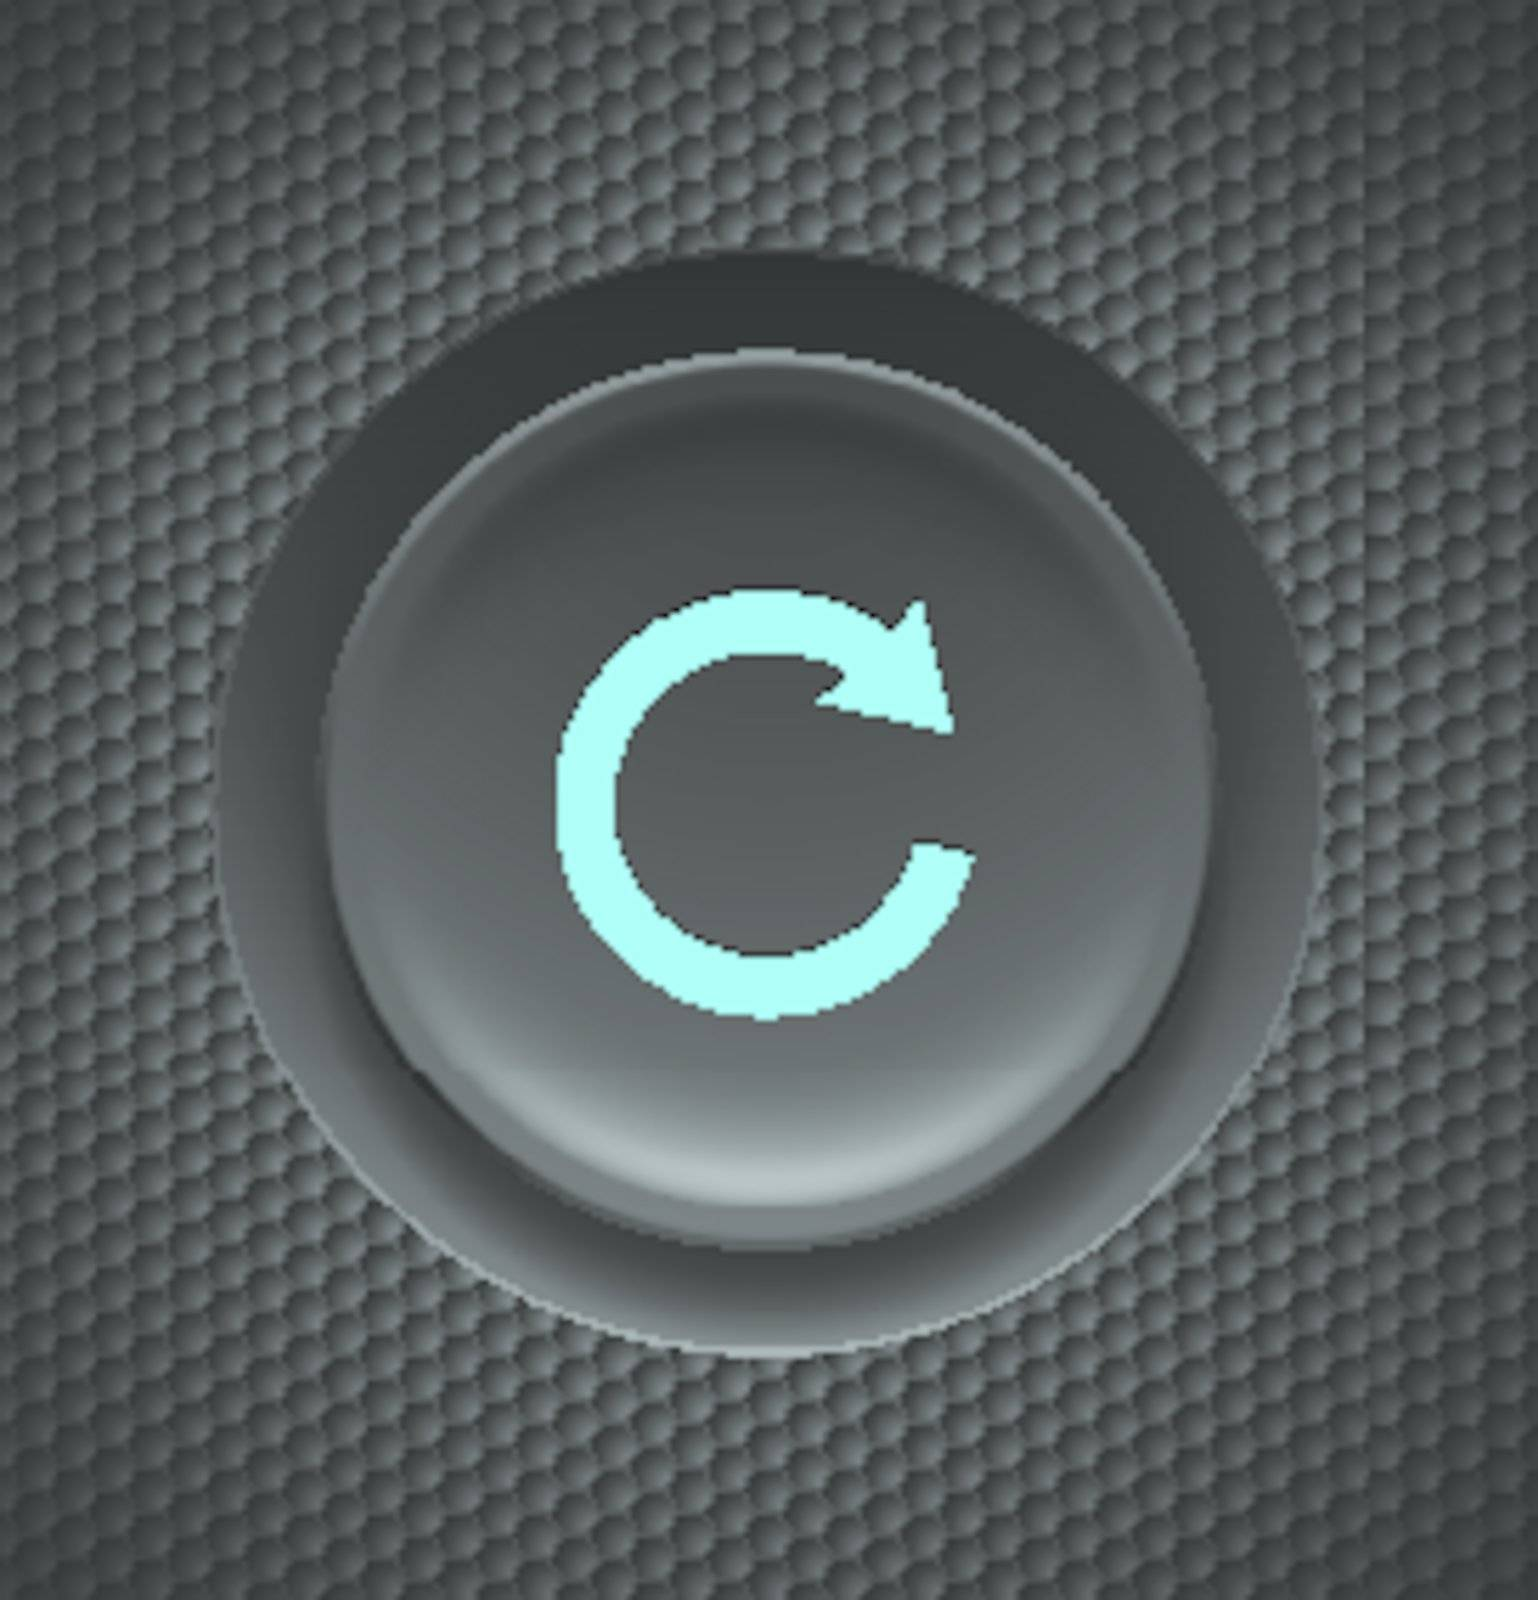 Black button with blue repeat sign on carbon background.